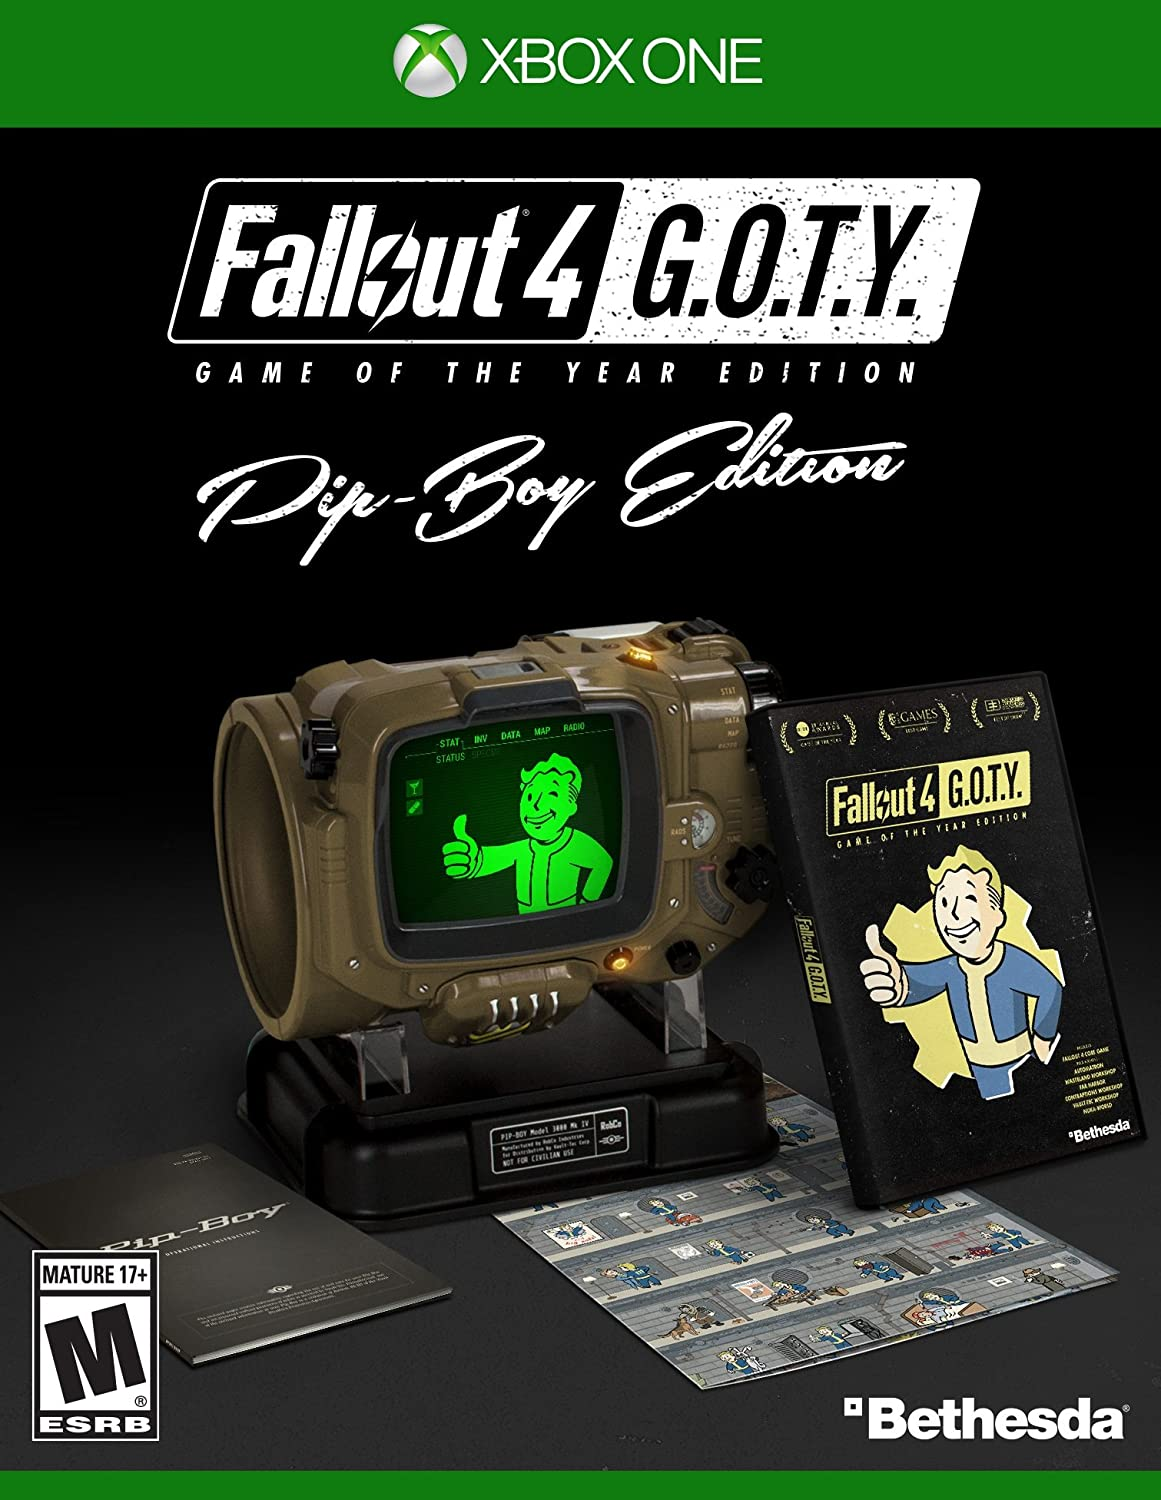 Fallout 4: Game of the Year Edition (Pip-Boy Edition) - Xbox One [NEW]